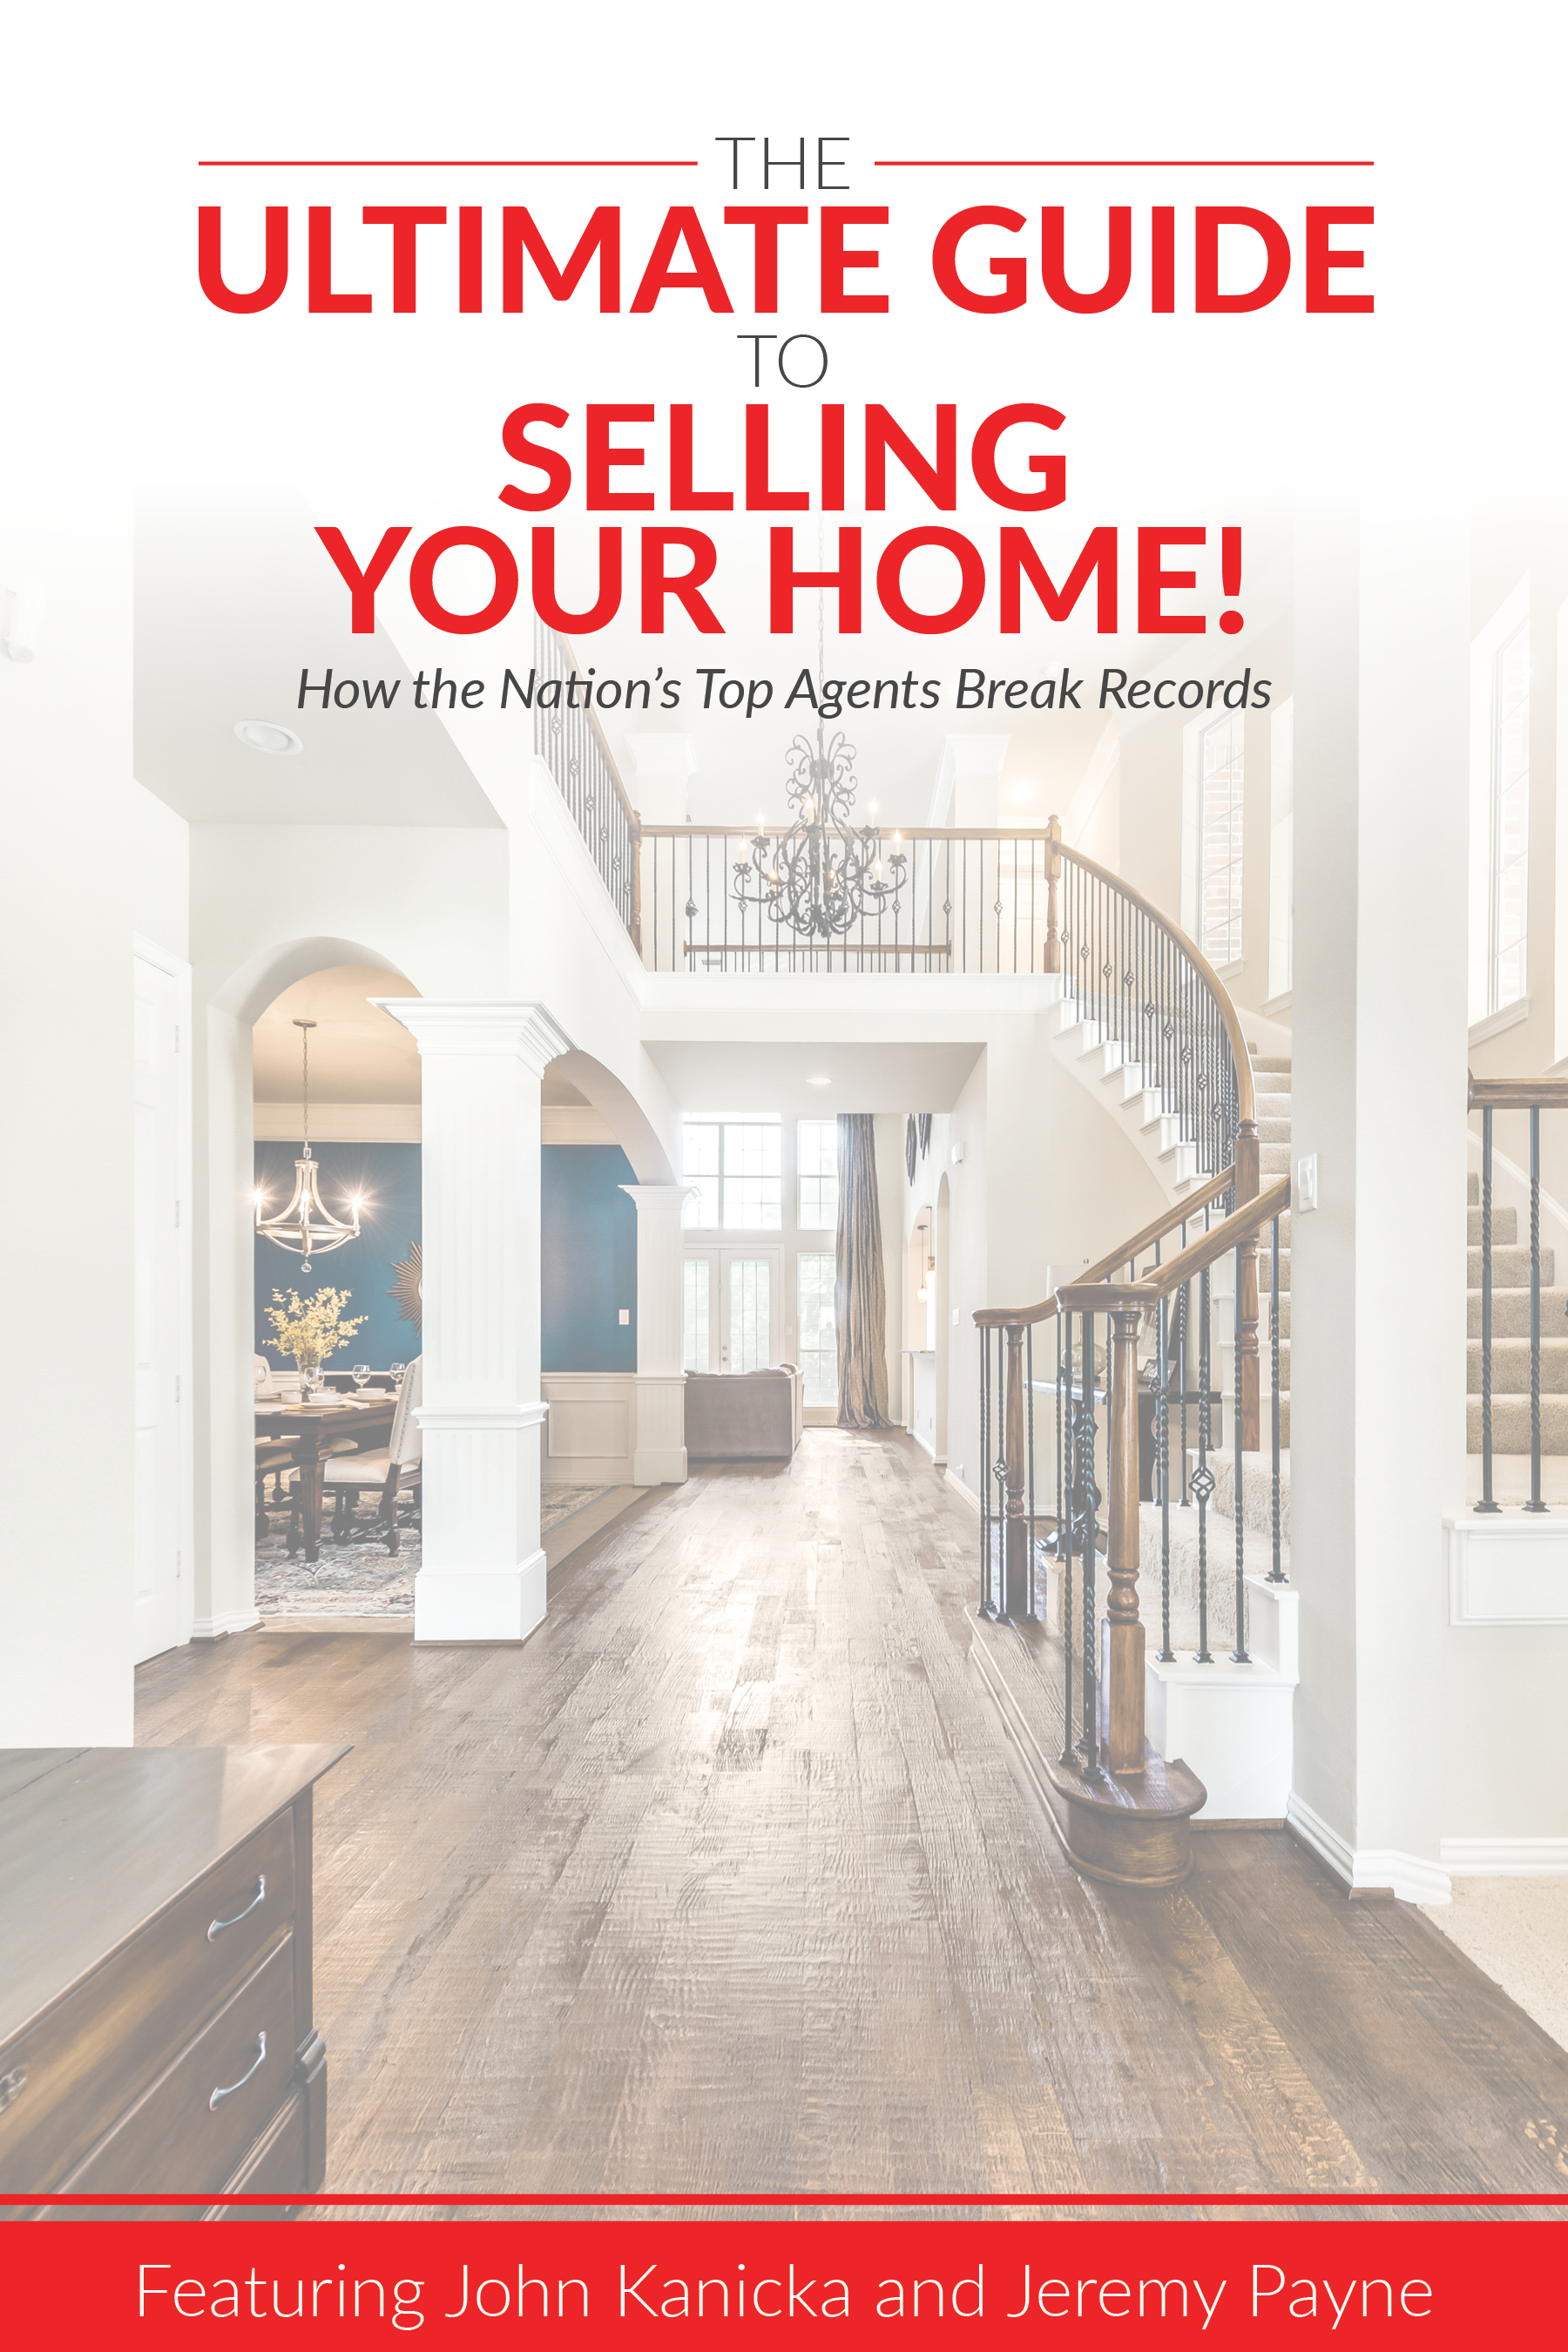 Post Pandemic Home Sales Take a Dive, What's Next?  REGS Publishing's New Best Selling Book Has Answers.